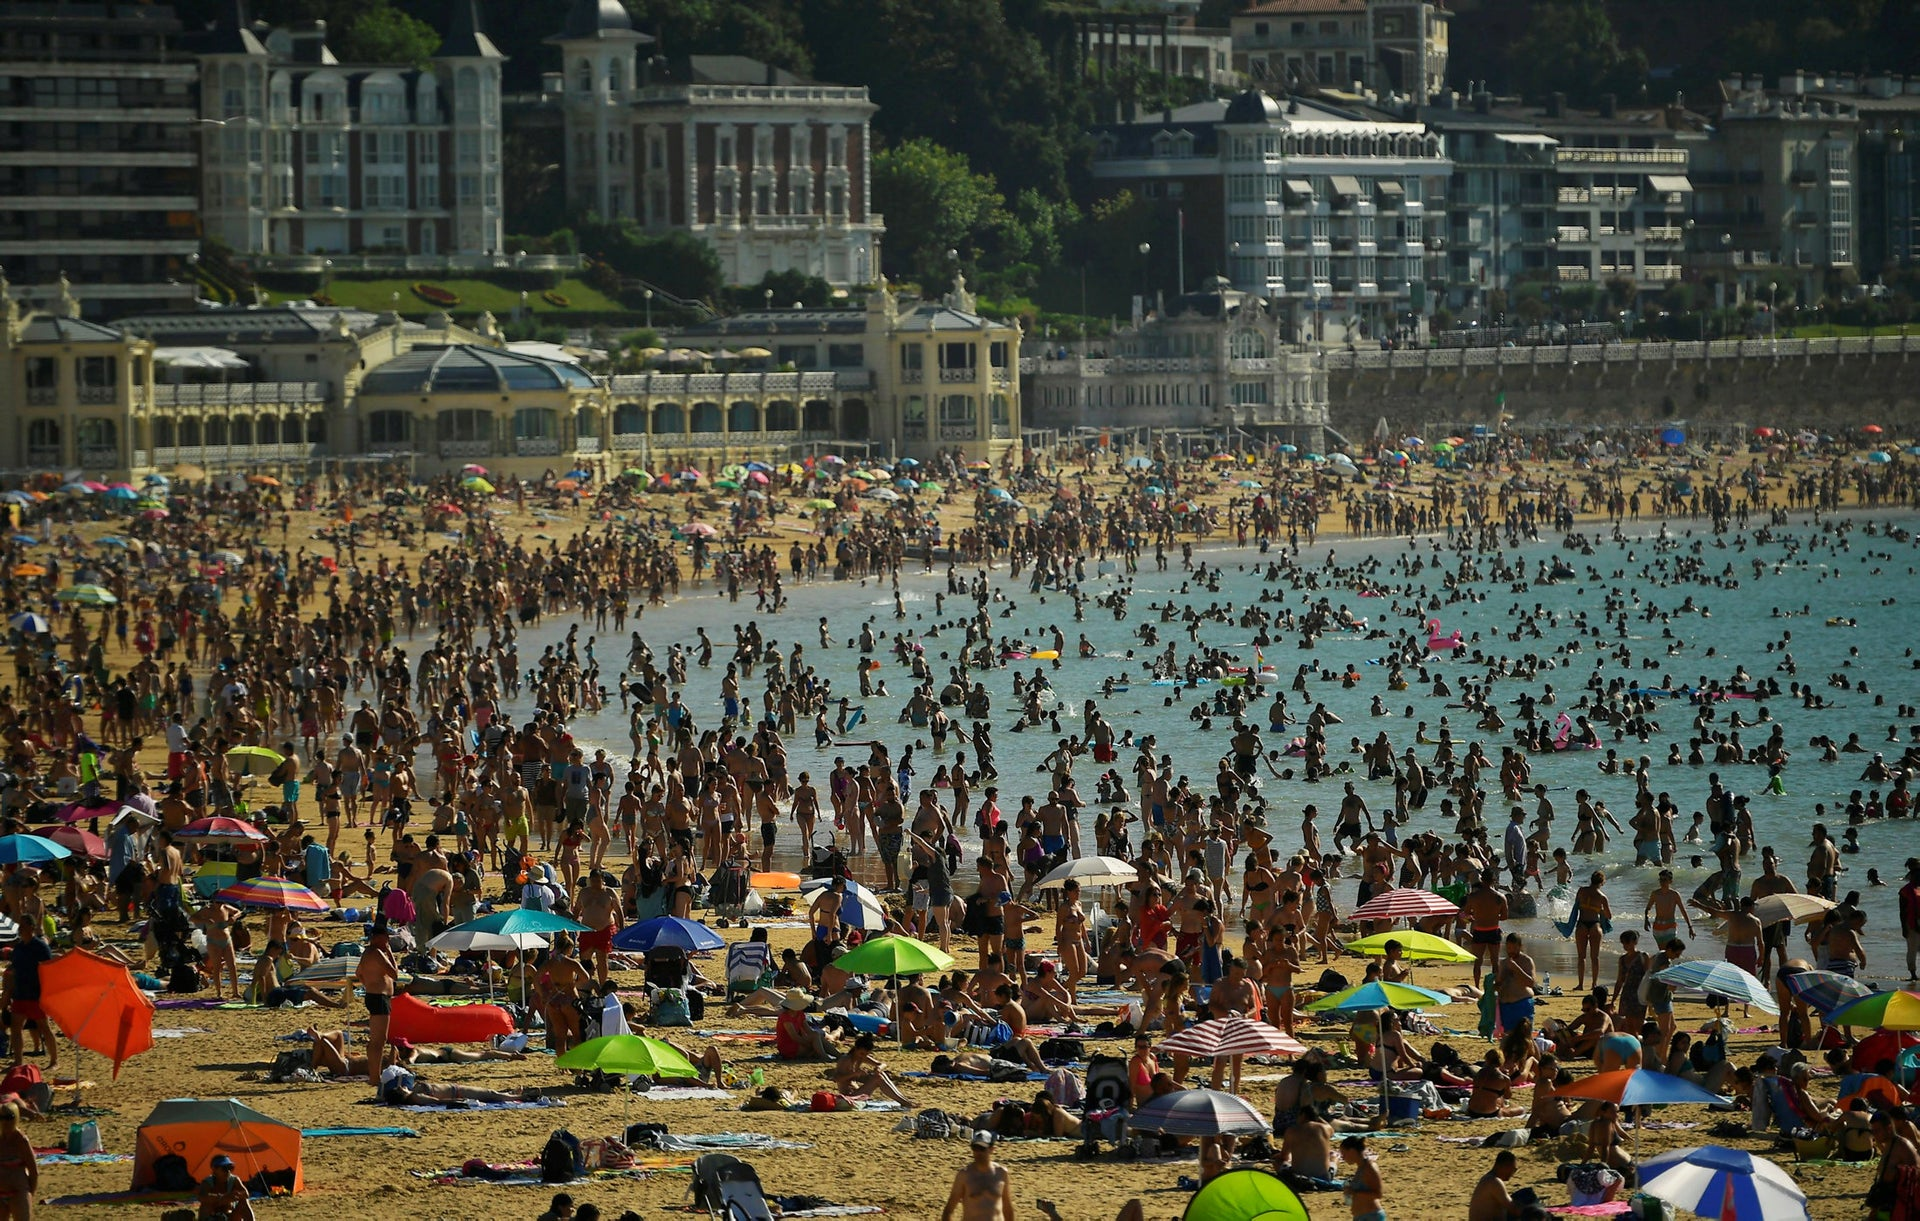 People crowd La Concha beach in the Basque city of San Sebastian, northern Spain, Friday, Aug. 3, 2018. Hot air from Africa is bringing a heat wave to Europe, prompting health warnings about Sahara Desert dust and exceptionally high temperatures that could peak at 47 degrees Celsius (117 Fahrenheit) in Spain and Portugal.